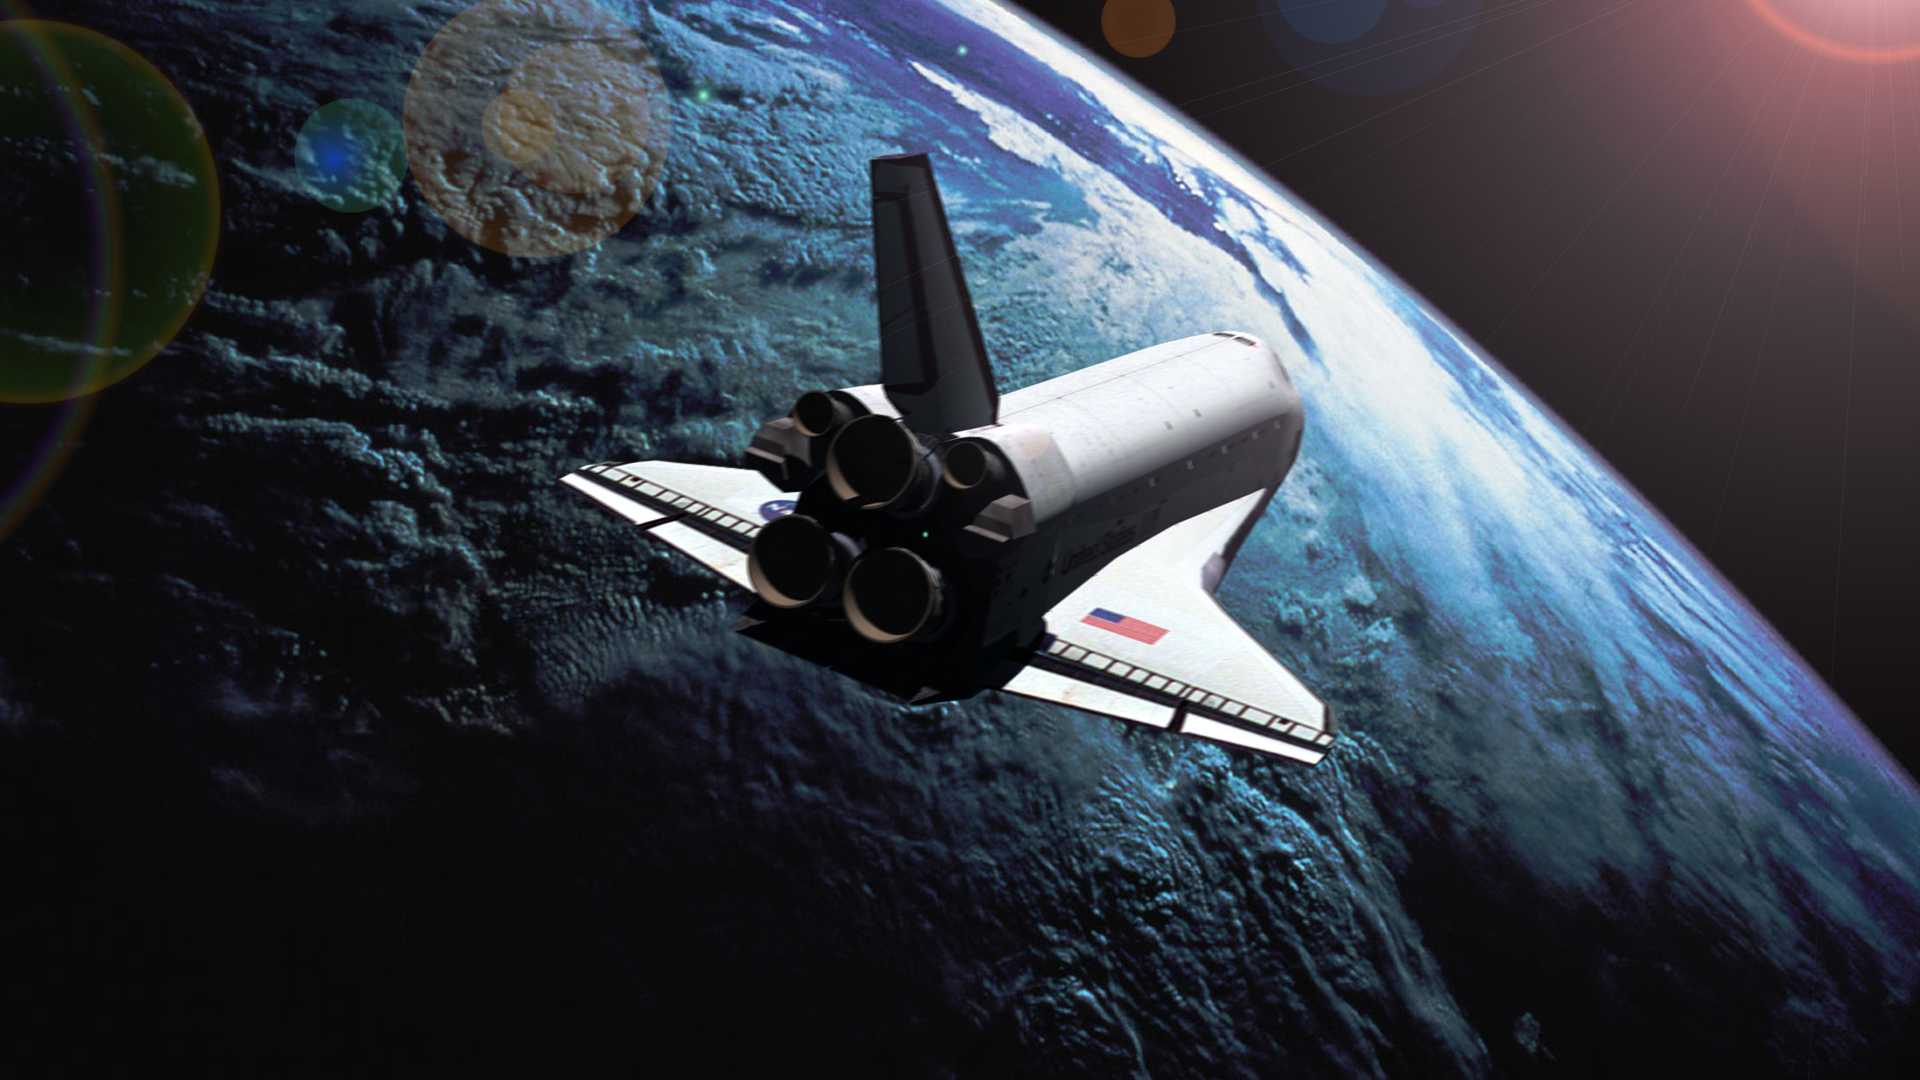 space shuttle endeavour orbiting - photo #3